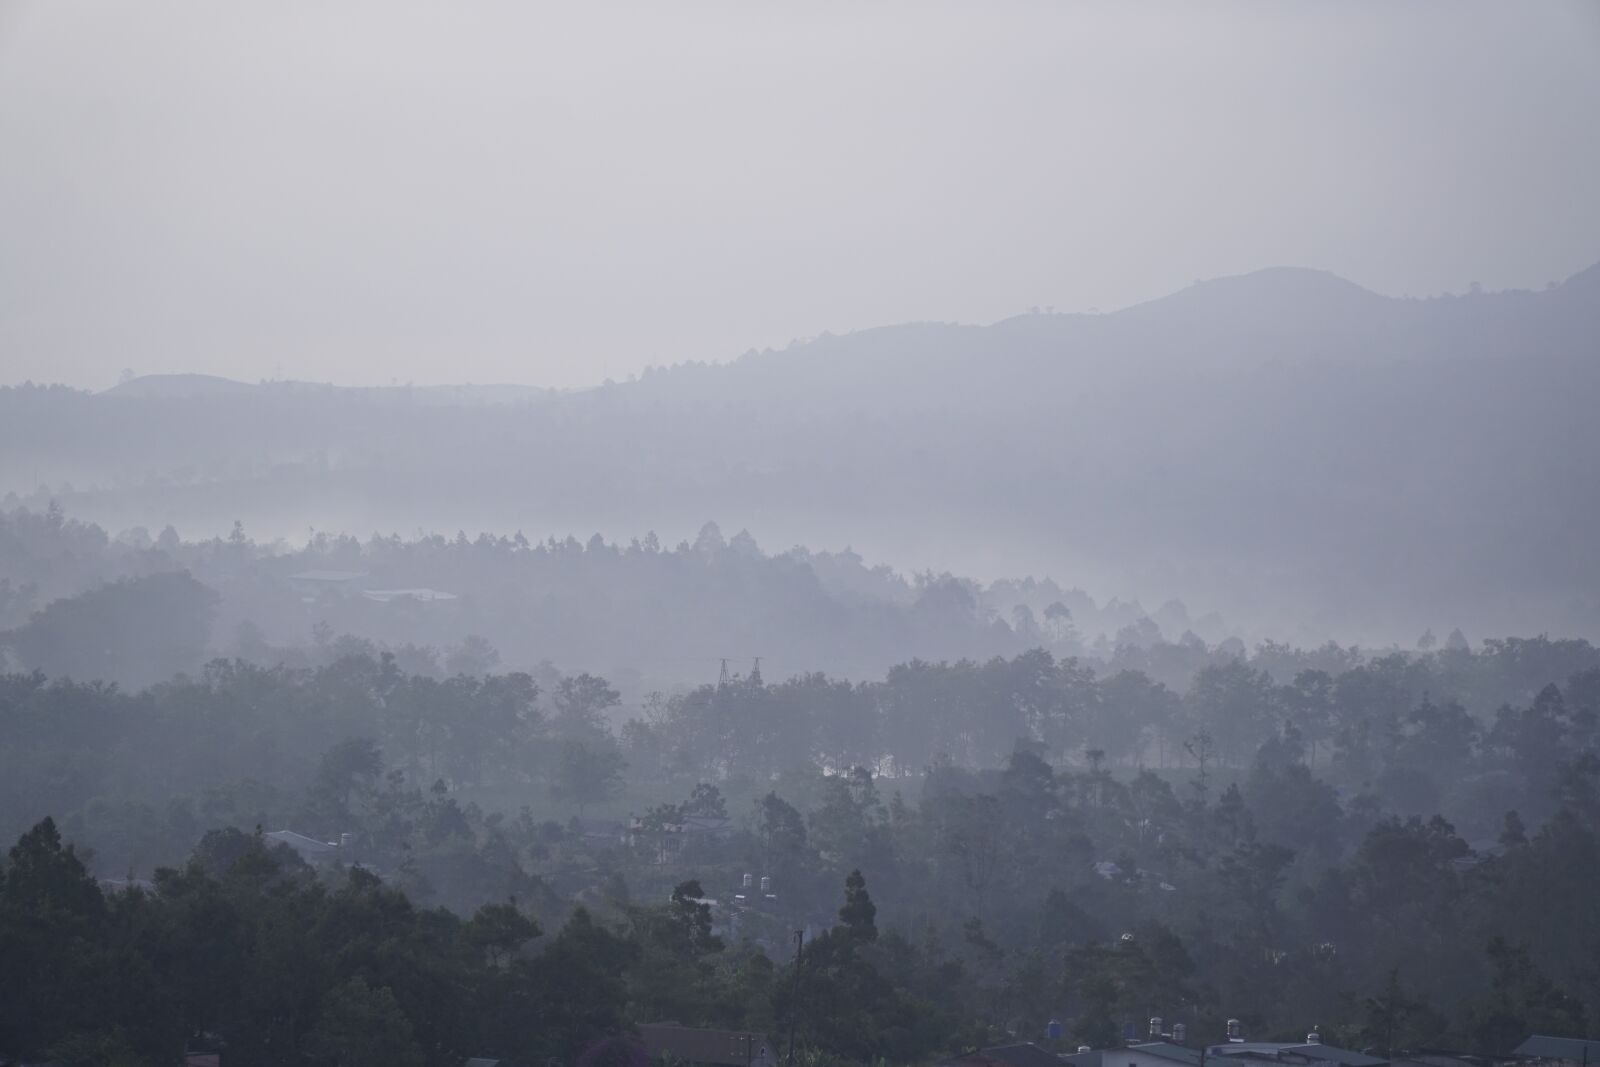 """Sony a6300 sample photo. """"Fog, mountains, forest"""" photography"""